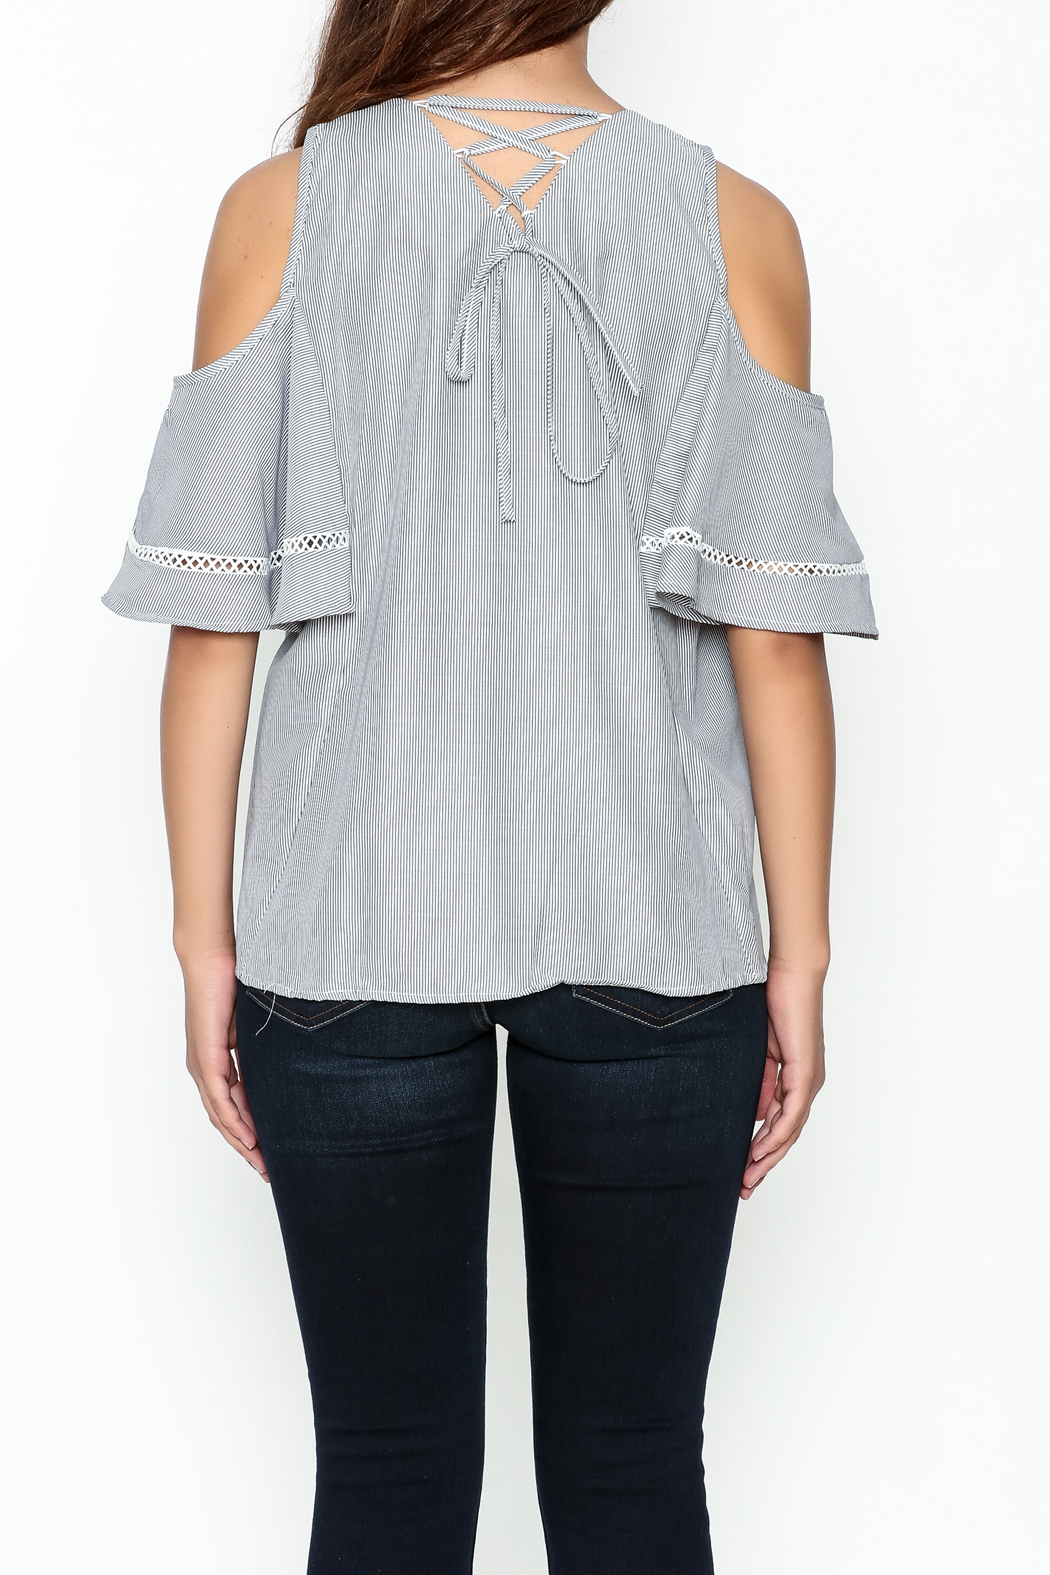 Grace & Emma Grey Cold Shoulder Top - Back Cropped Image